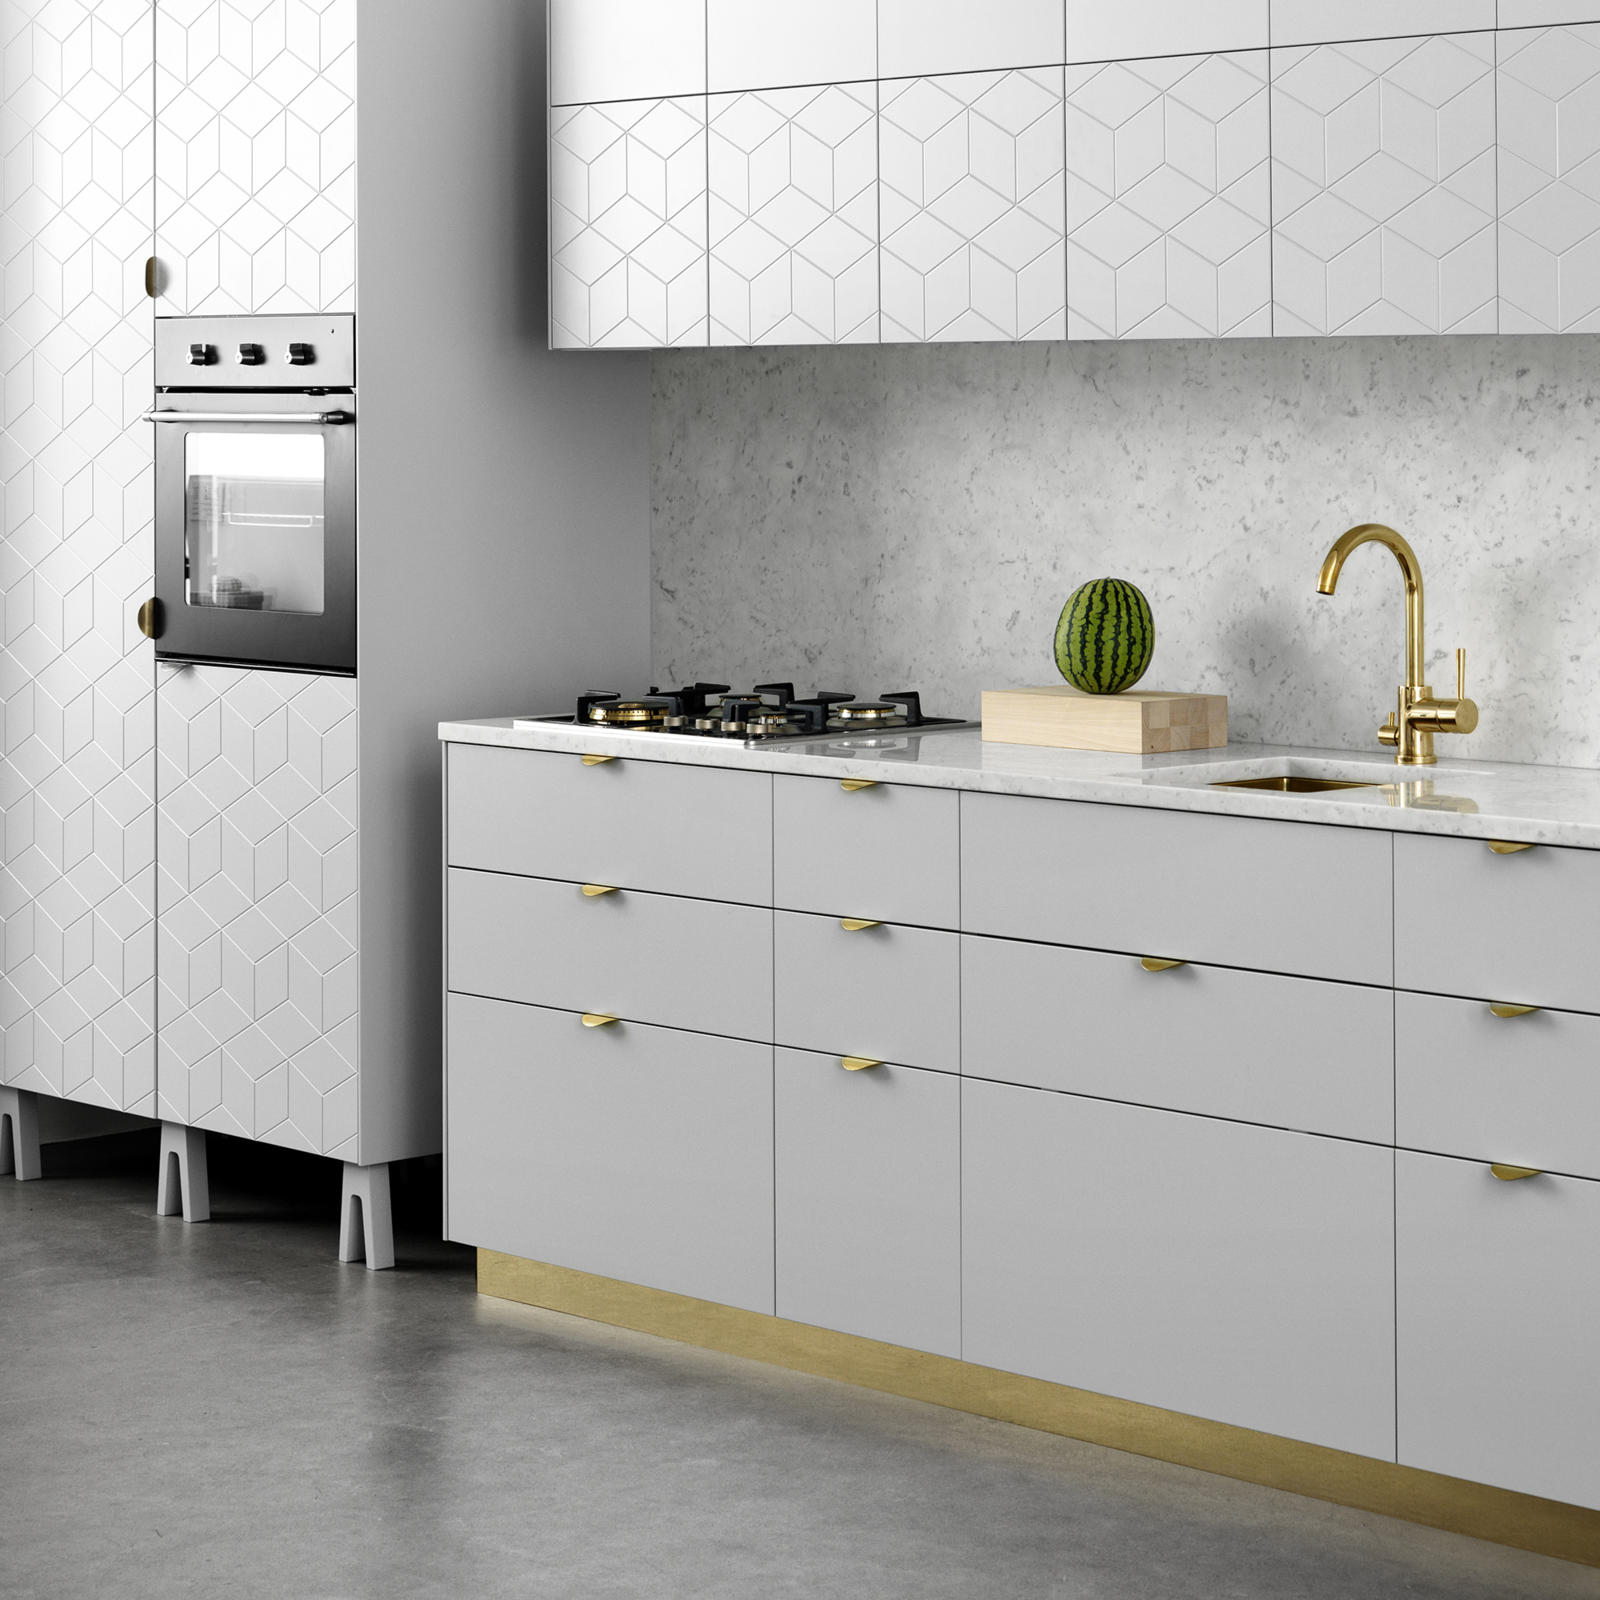 Light grey kitchen with handles and plinth in brass